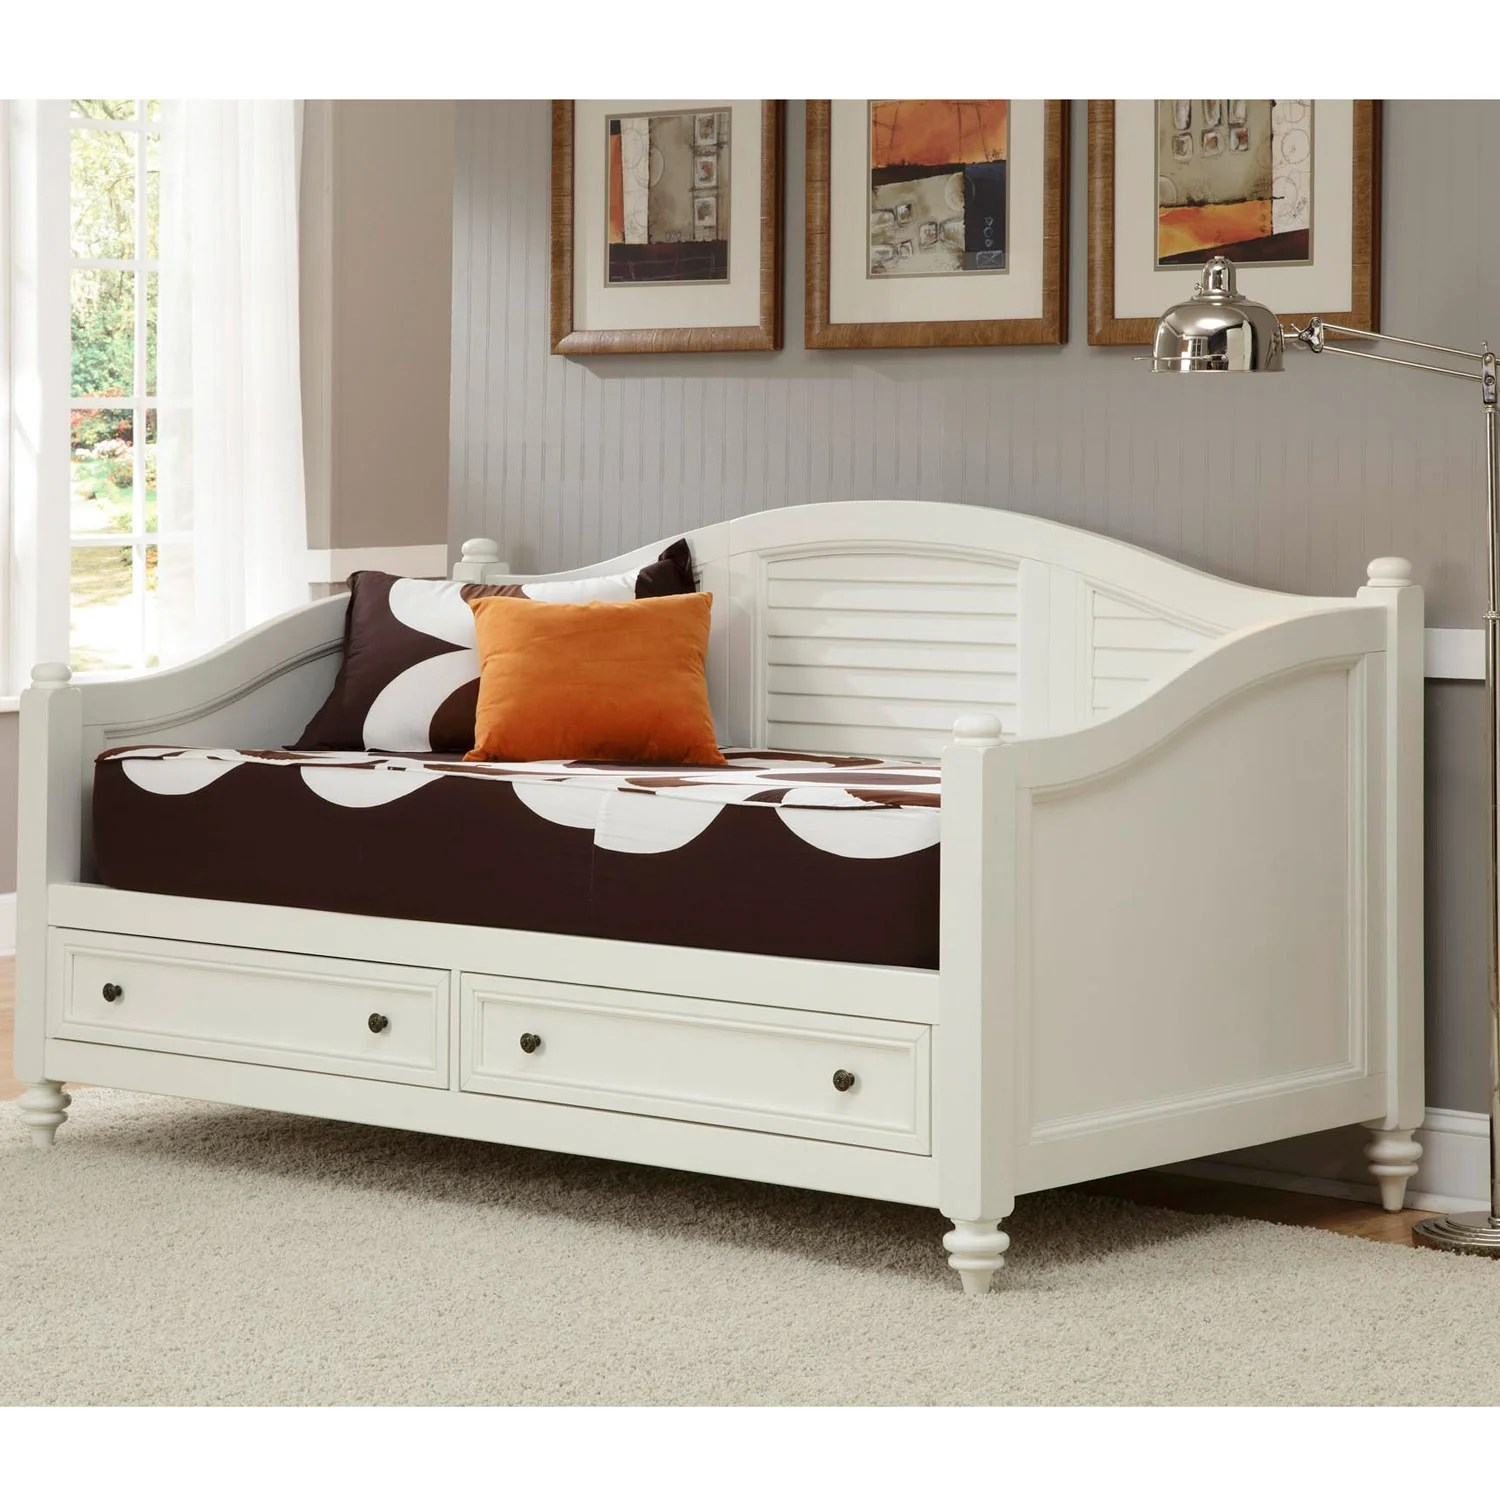 Home Styles Bermuda Brushed White Finish Twin Size DayBed 14270802 Shopping